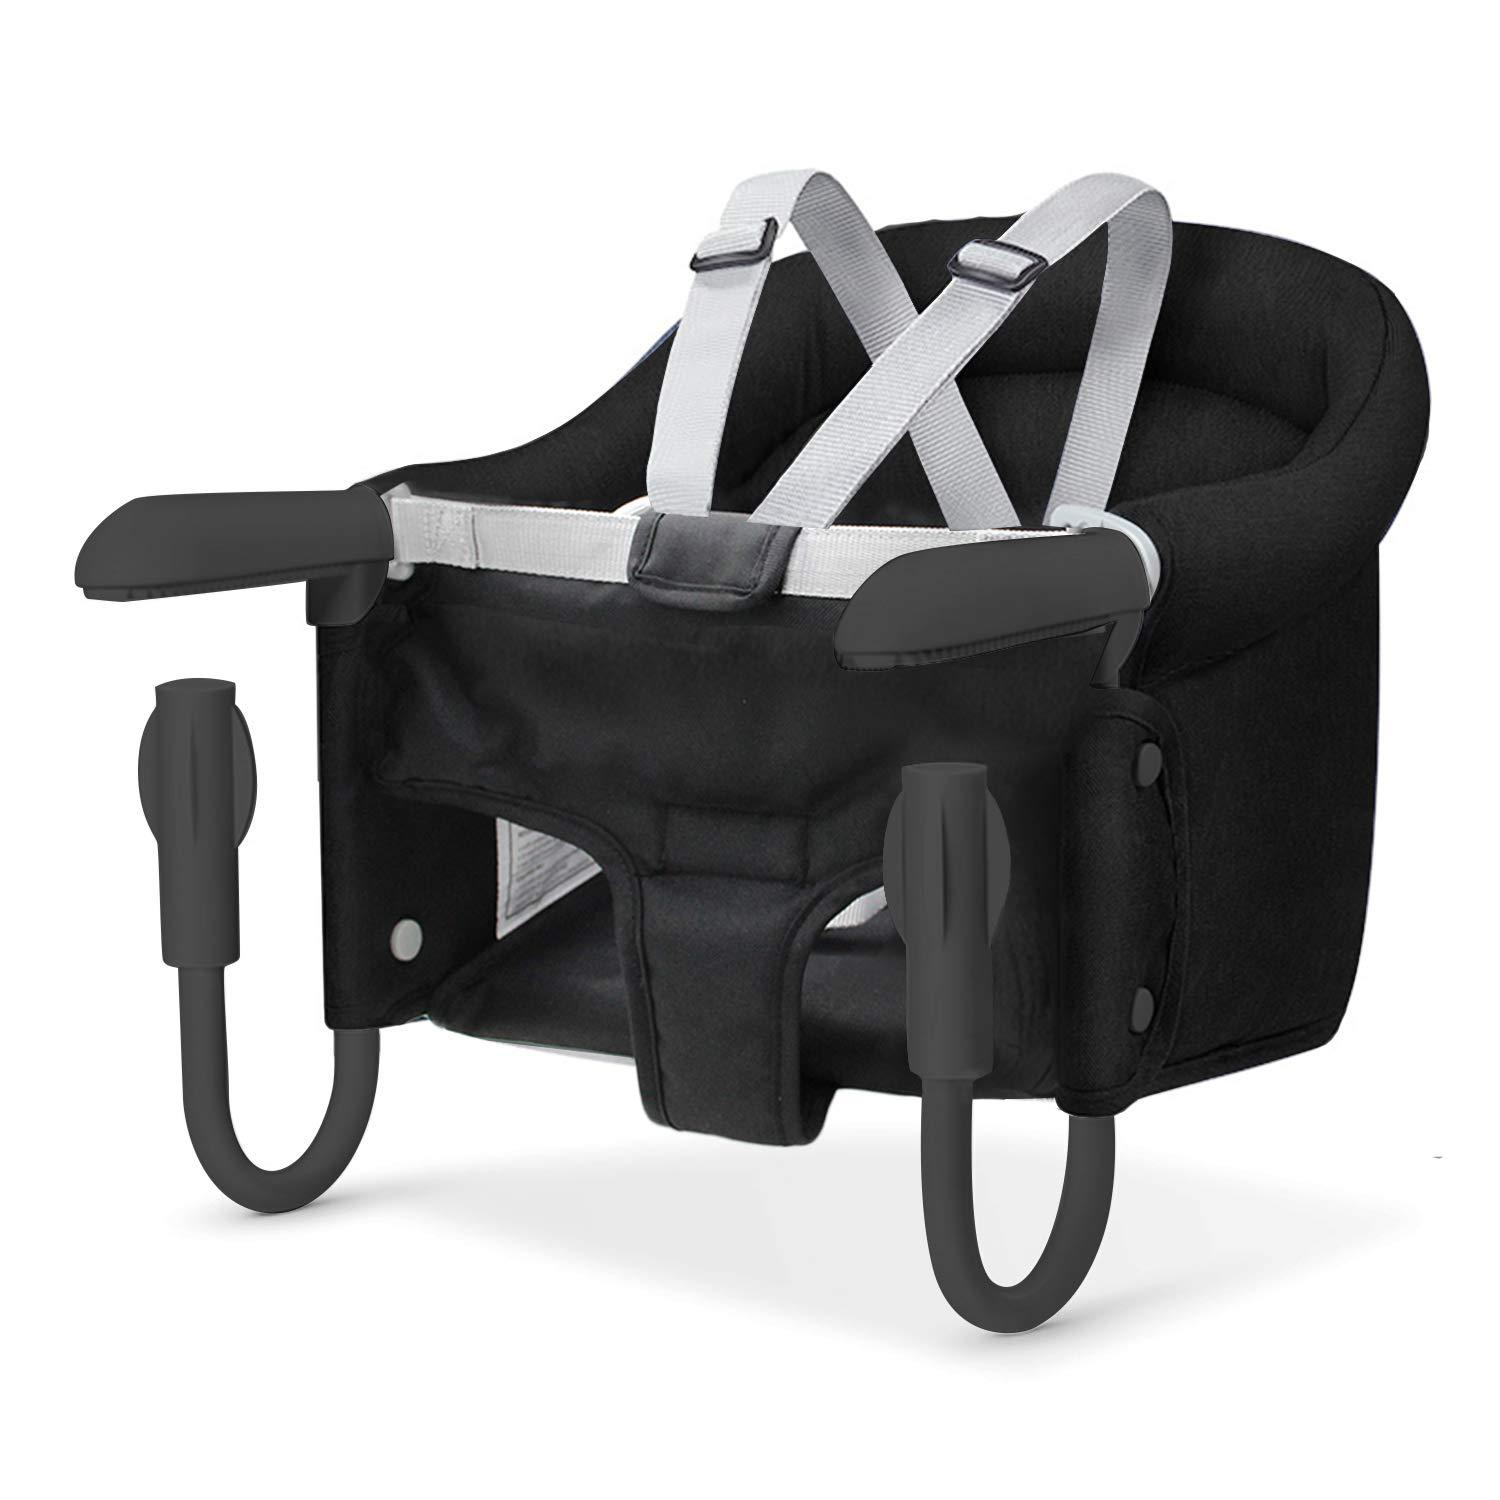 Merveilleux Hook On High Chair, Portable Baby Clip On Table High Chair, Space Saver High  Chair Black   Walmart.com